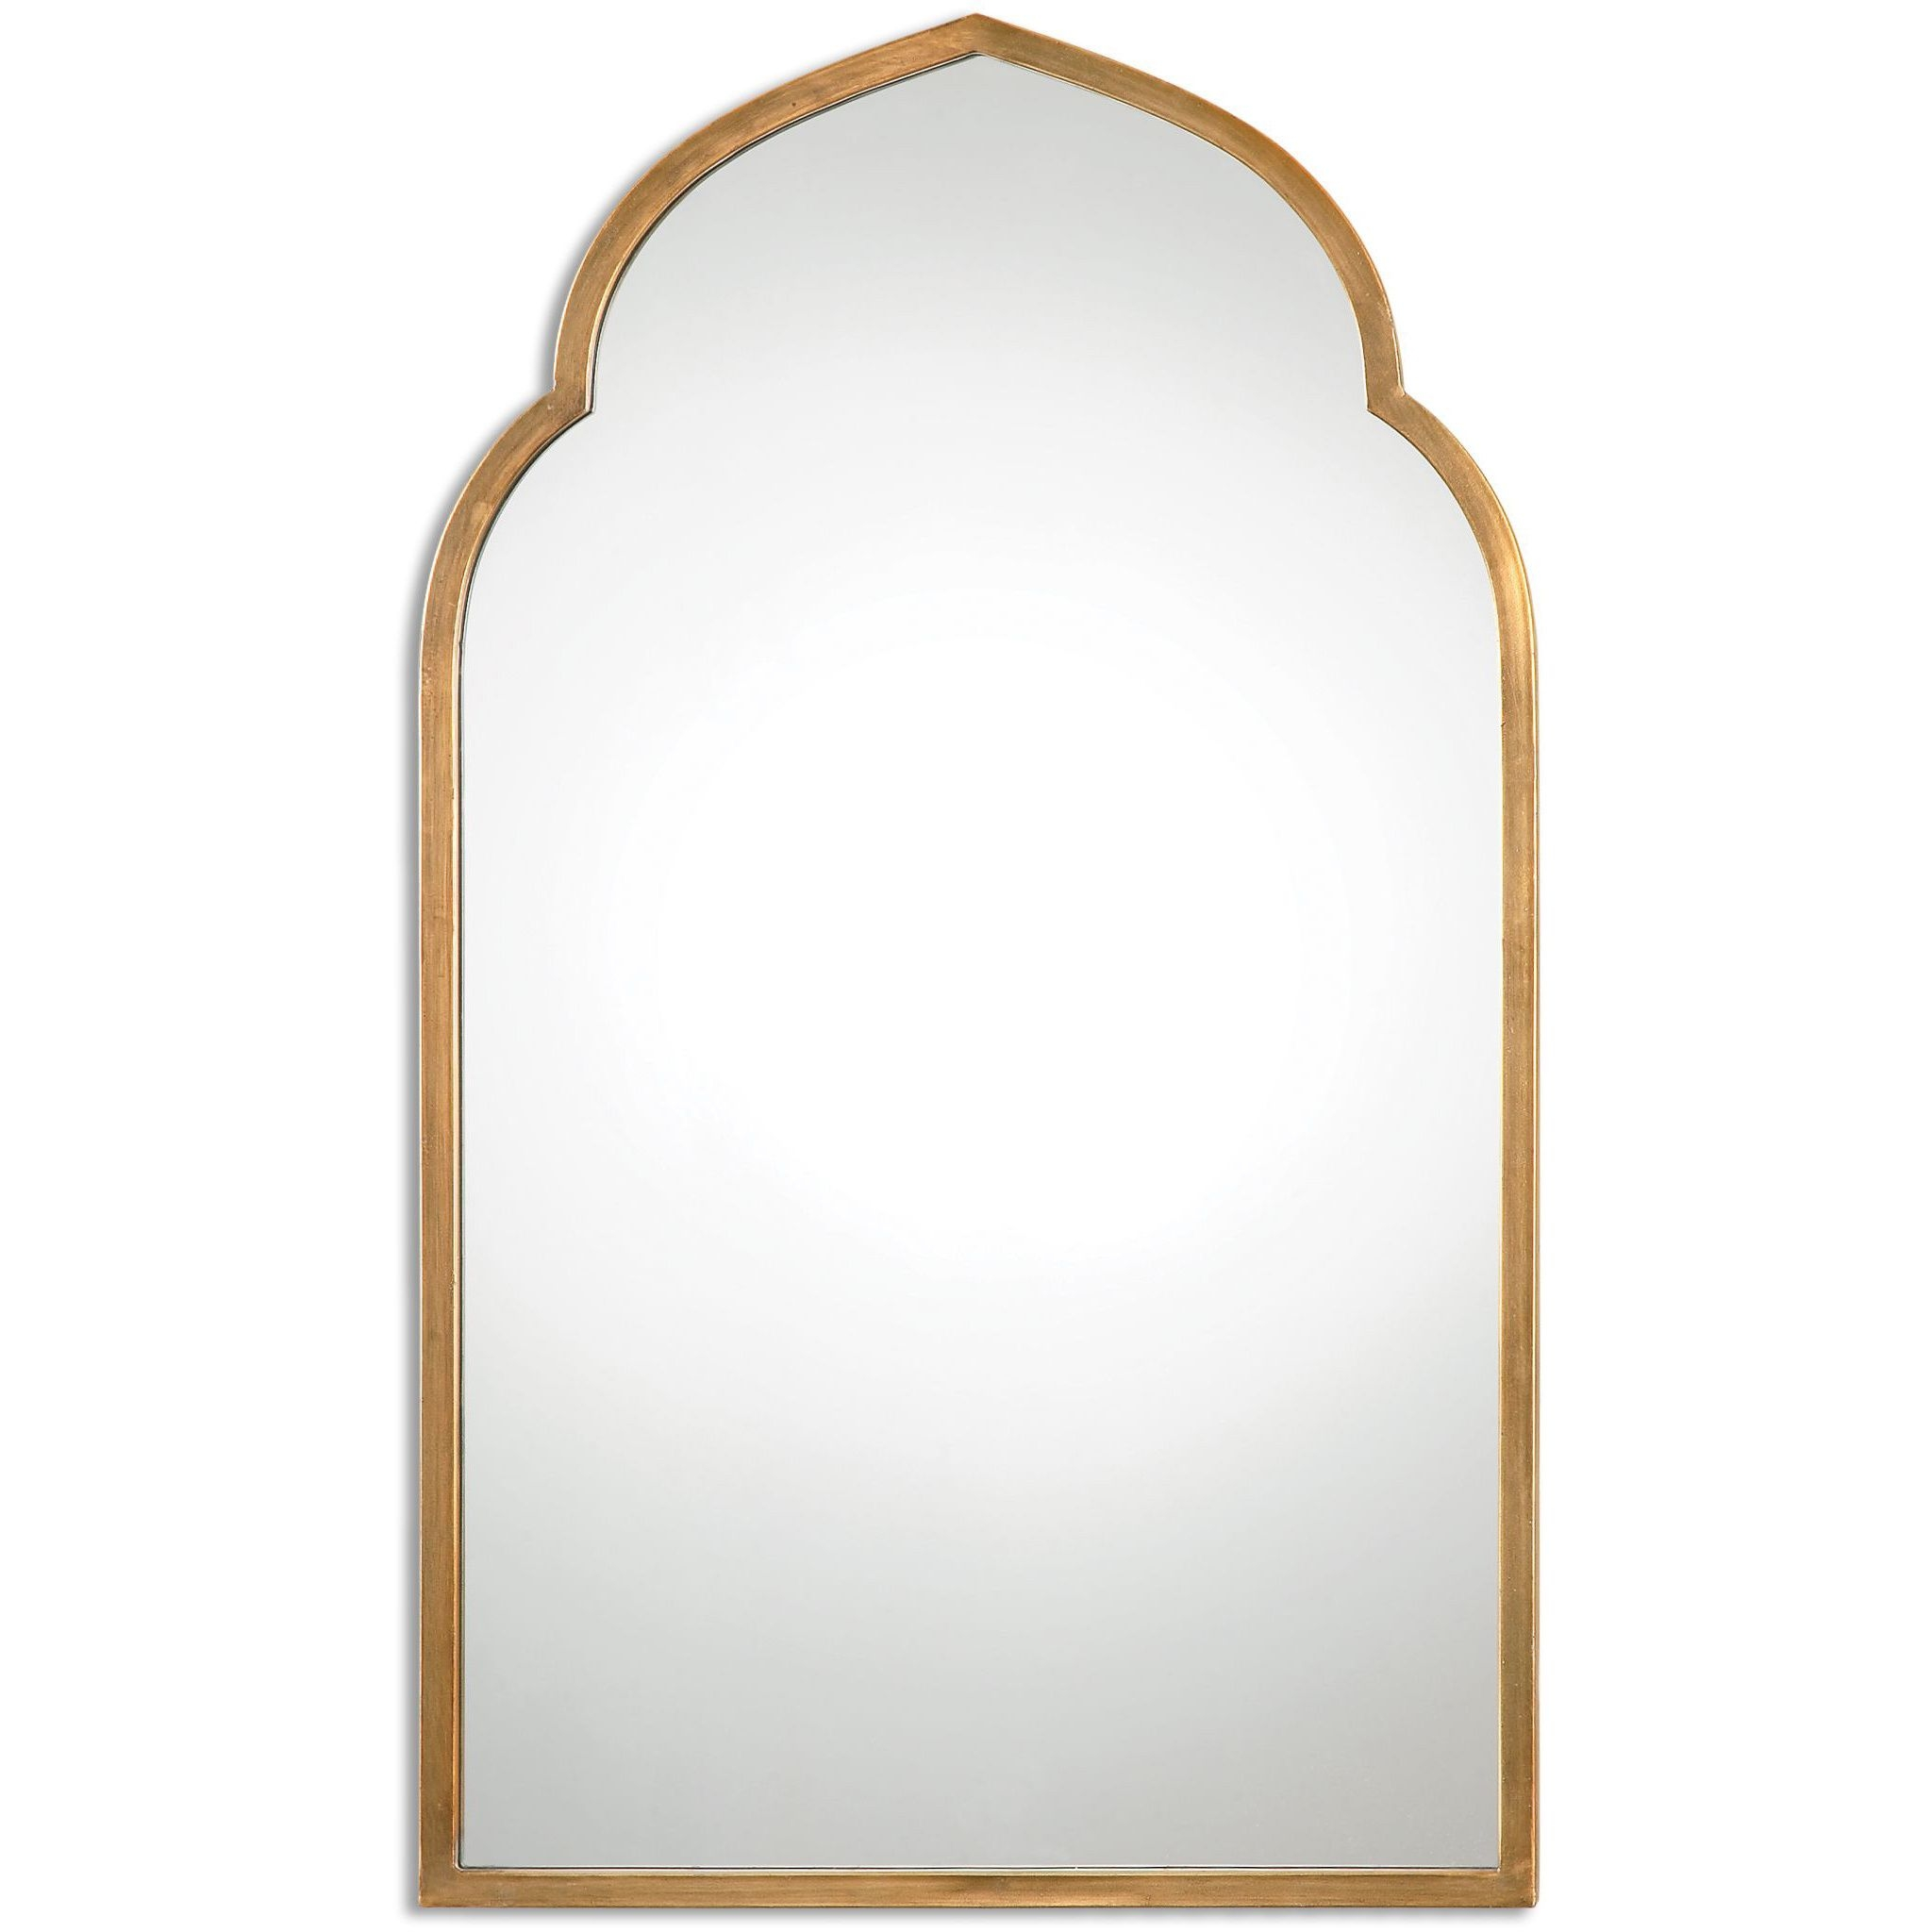 Uttermost Kenitra Gold Arch Decorative Wall Mirror Uttermost For Arched Mirrors Bathroom (Image 15 of 15)